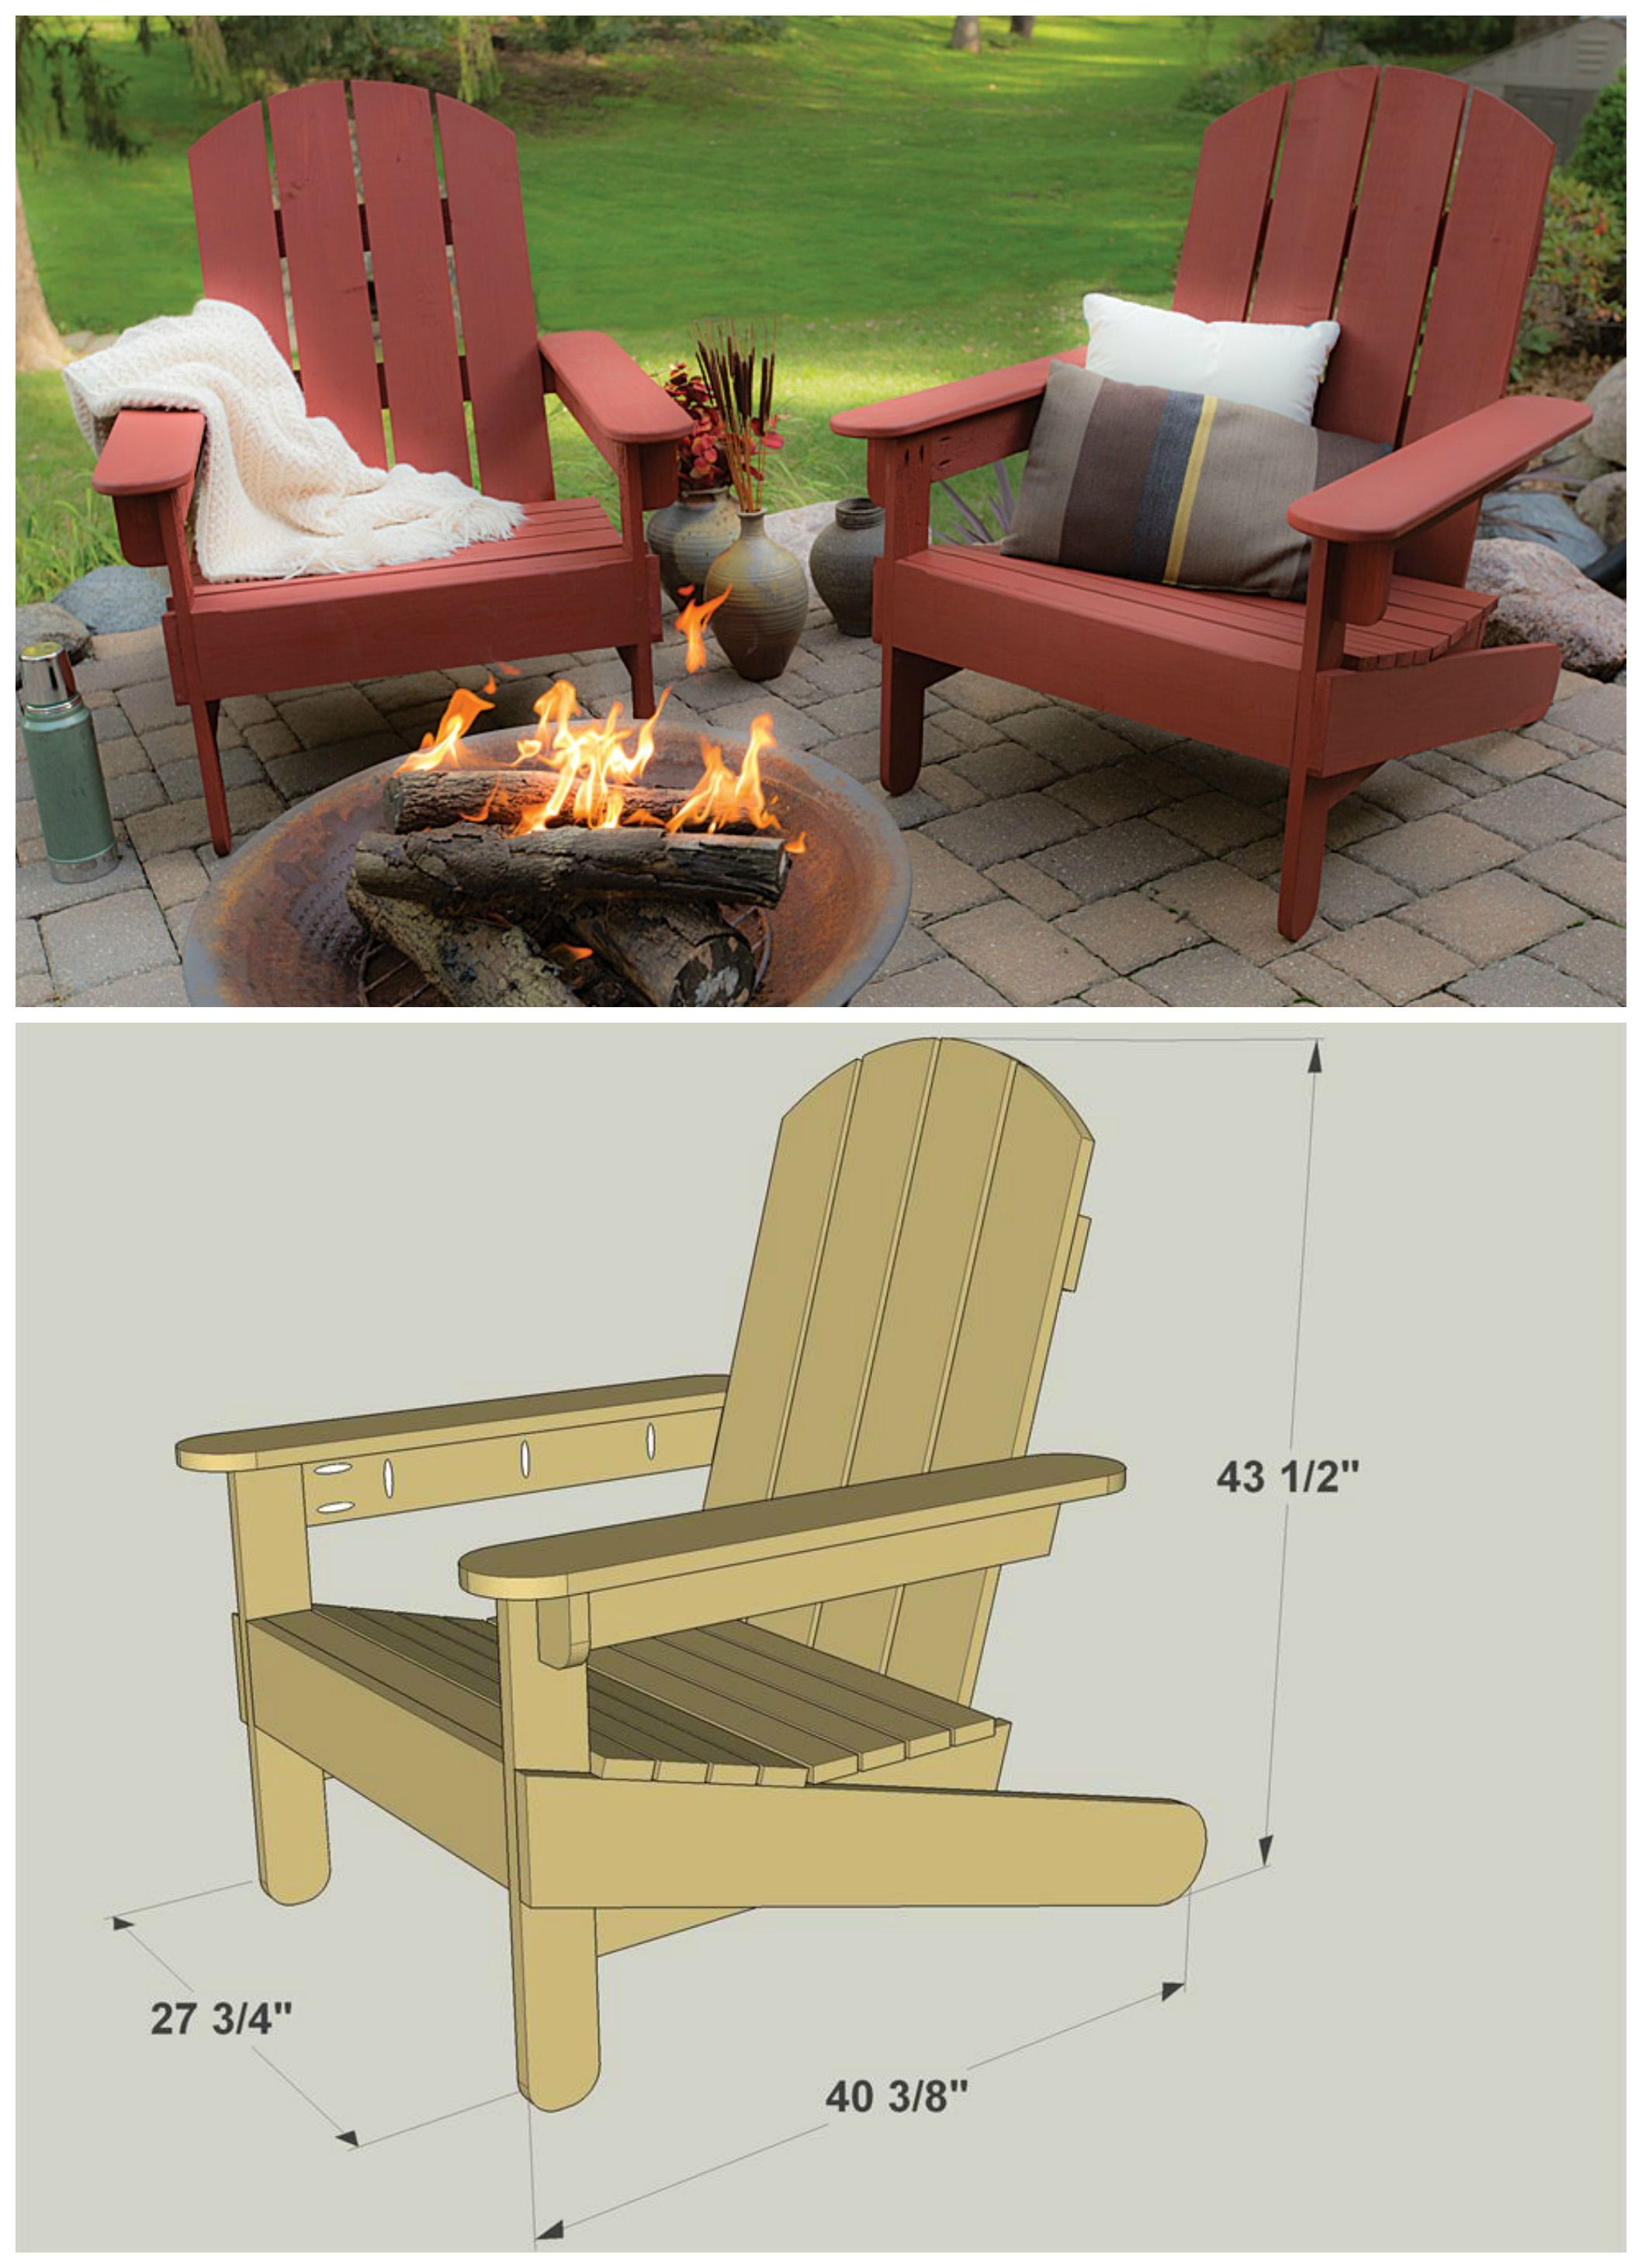 DIY Adirondack Chairs :: FREE PLANS at buildsomething.com | Lá fora ...